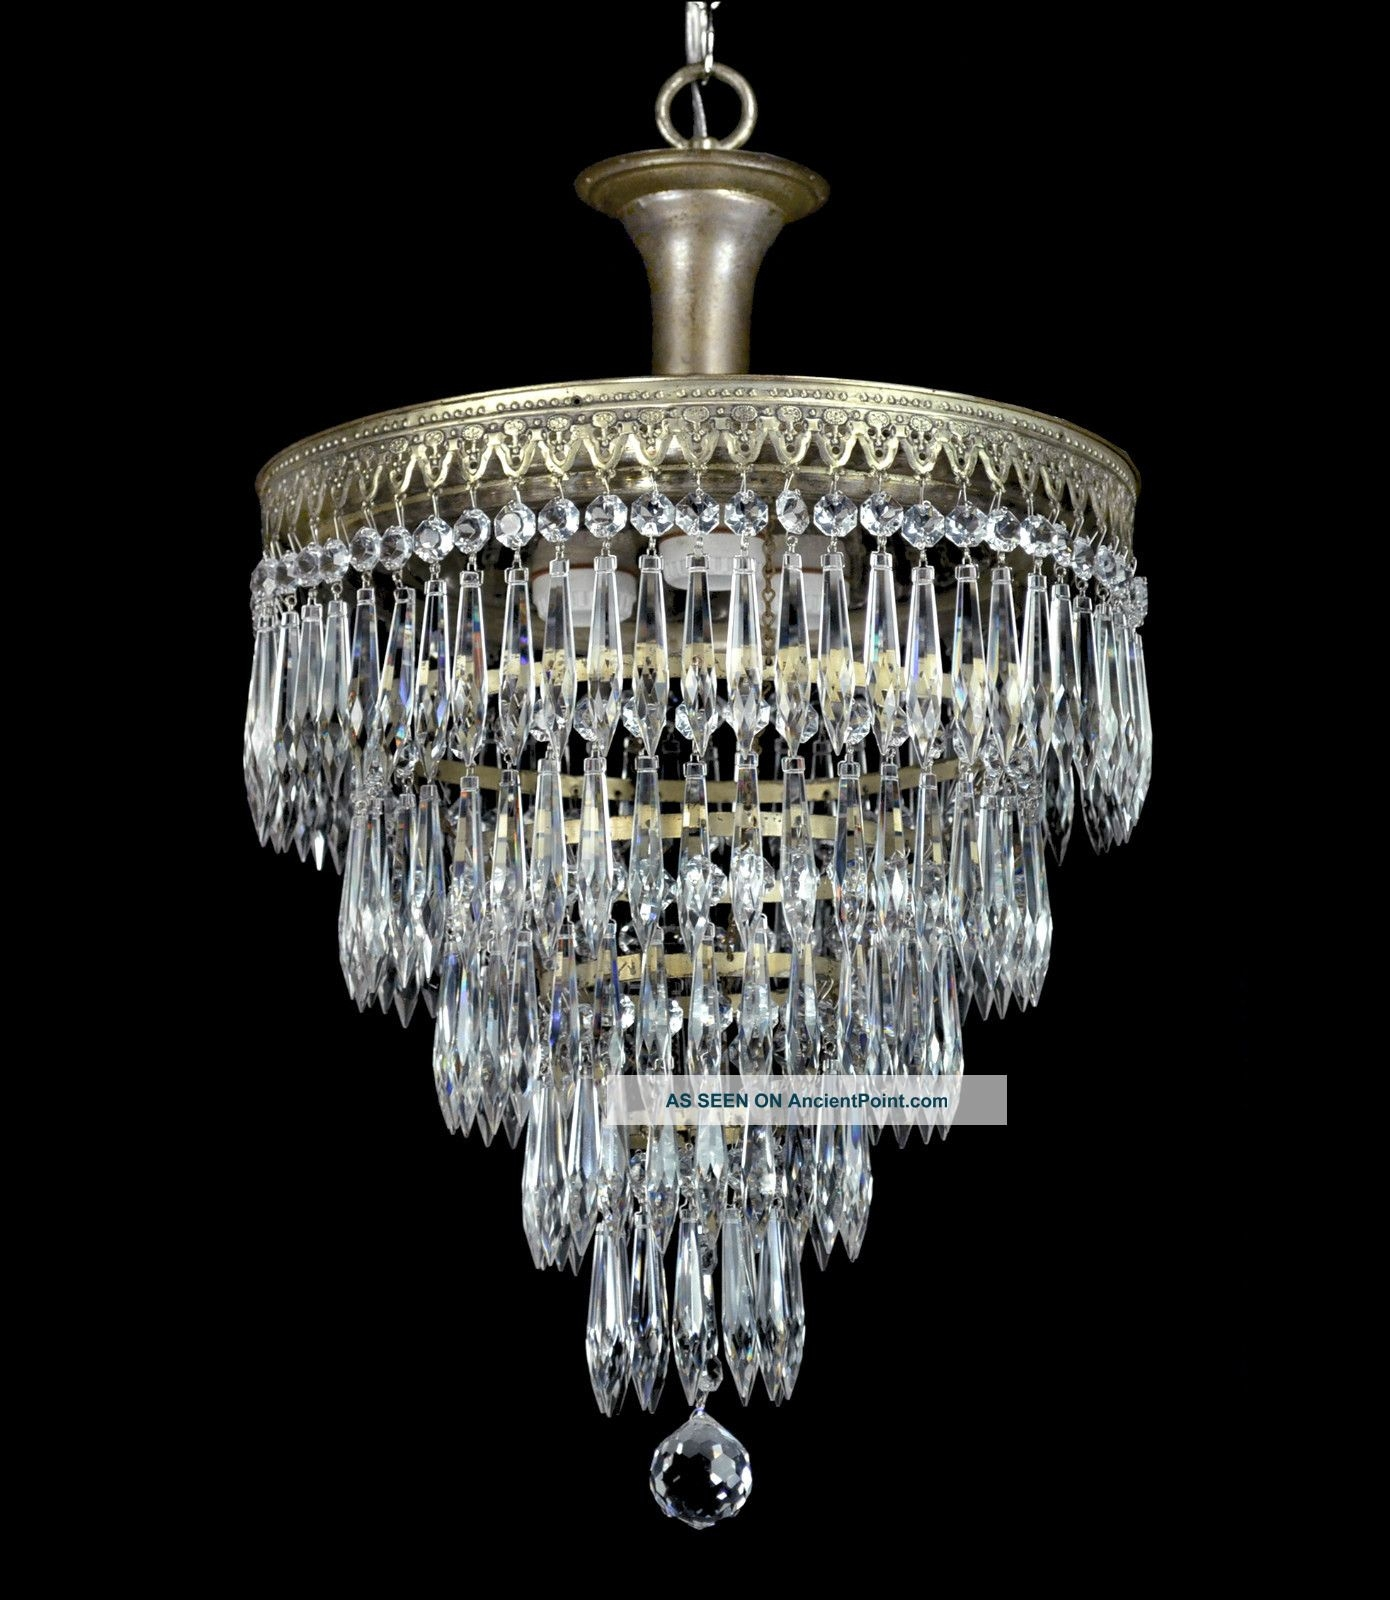 Vintage Wedding Cake Antique Chandelier Pendant Crystal Empire Art For Expensive Crystal Chandeliers (Image 15 of 15)